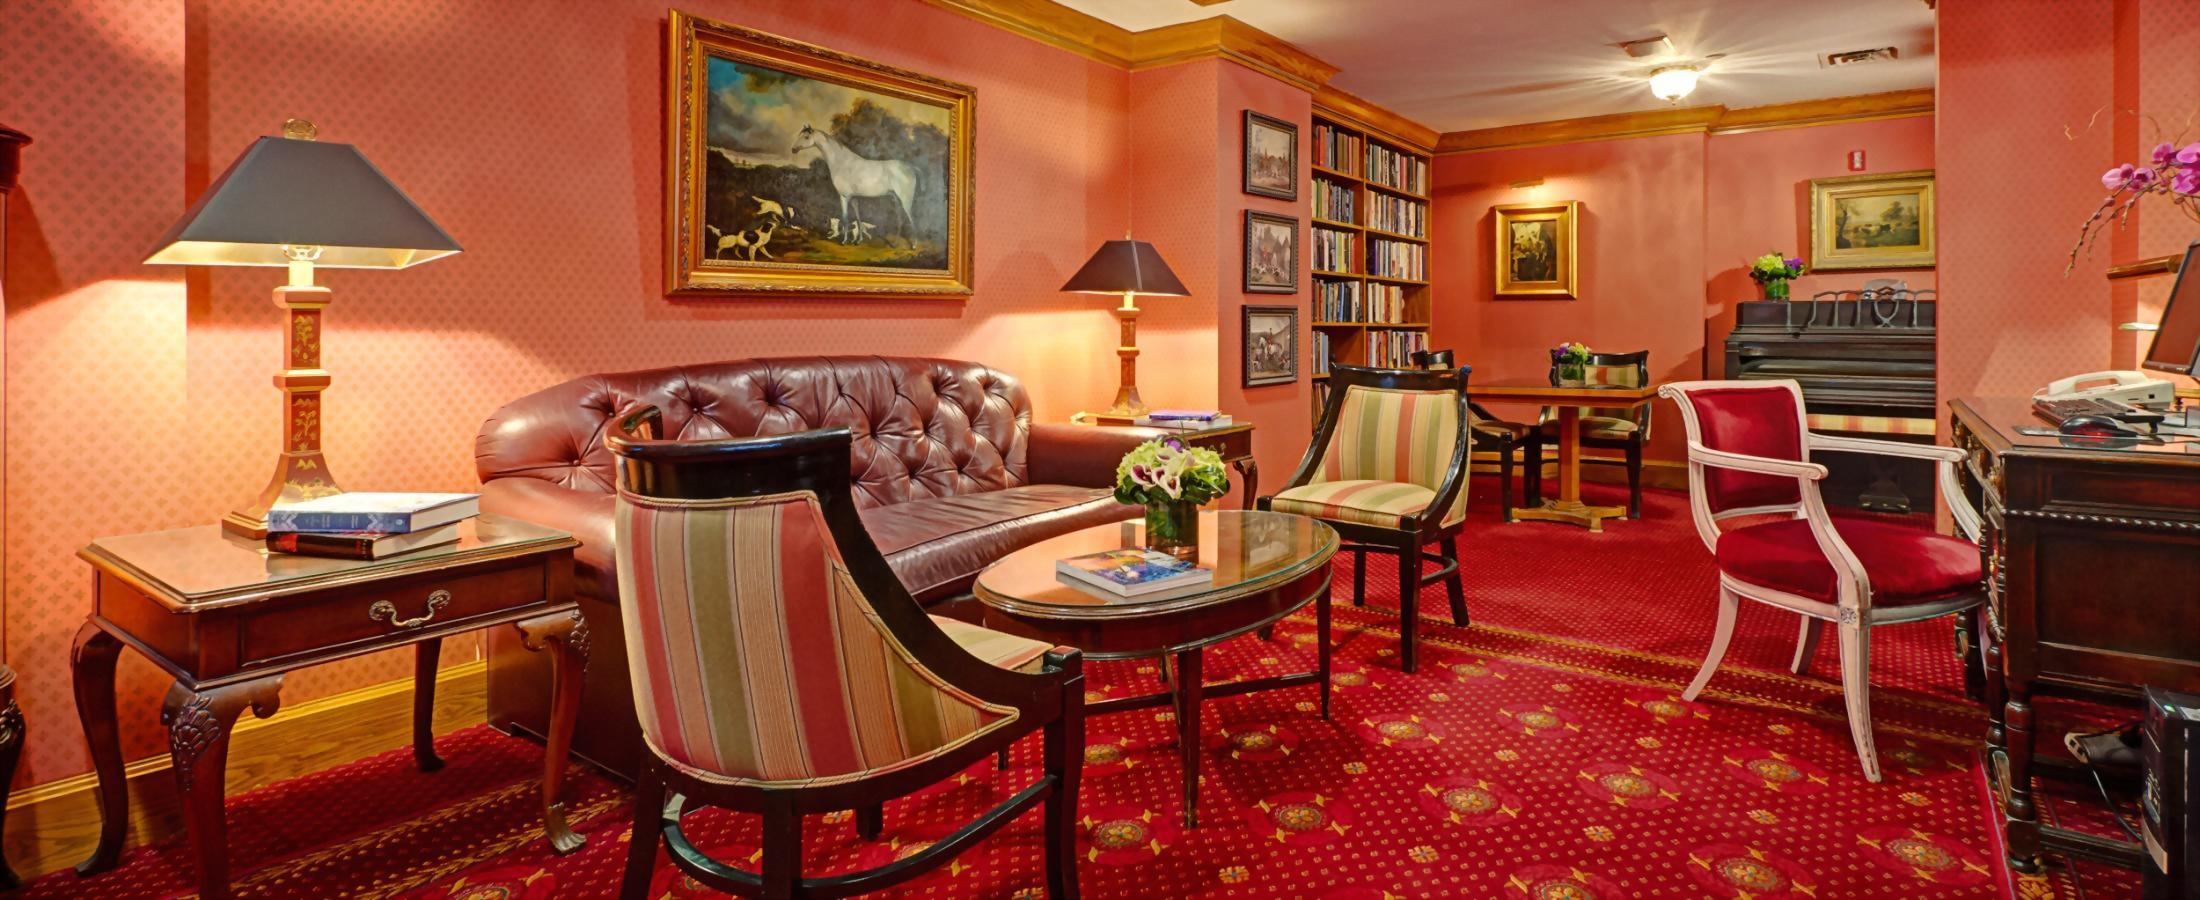 The Library at the Hotel Elysee by Library Hotel Collection is open for guests to enjoy a book, or use the computer.  There is a printer available for printing tickets or boarding passes.